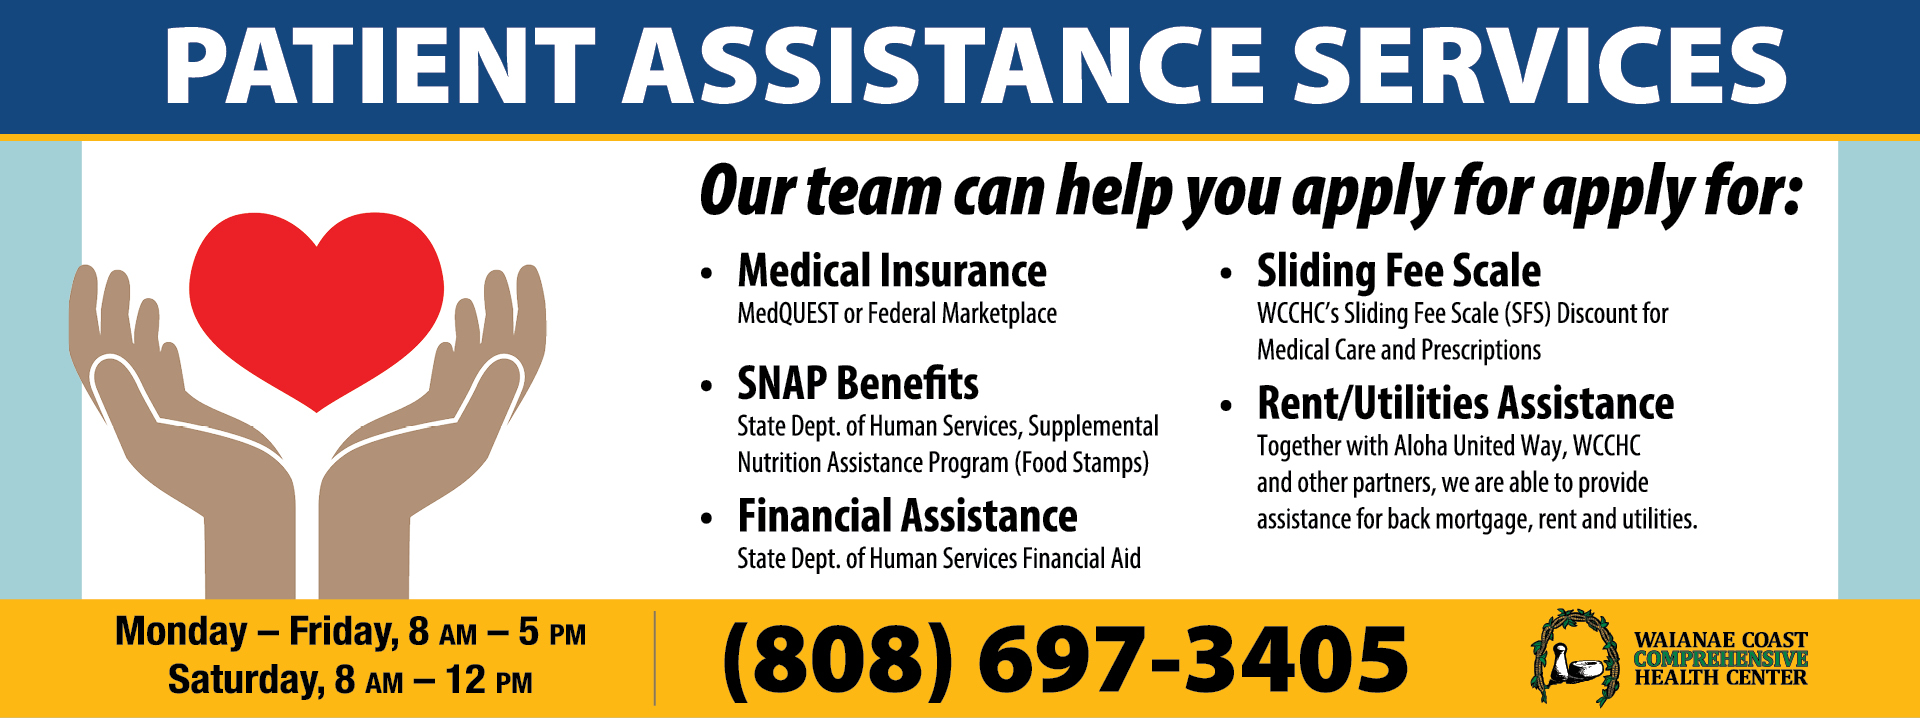 Patient Assistance Services